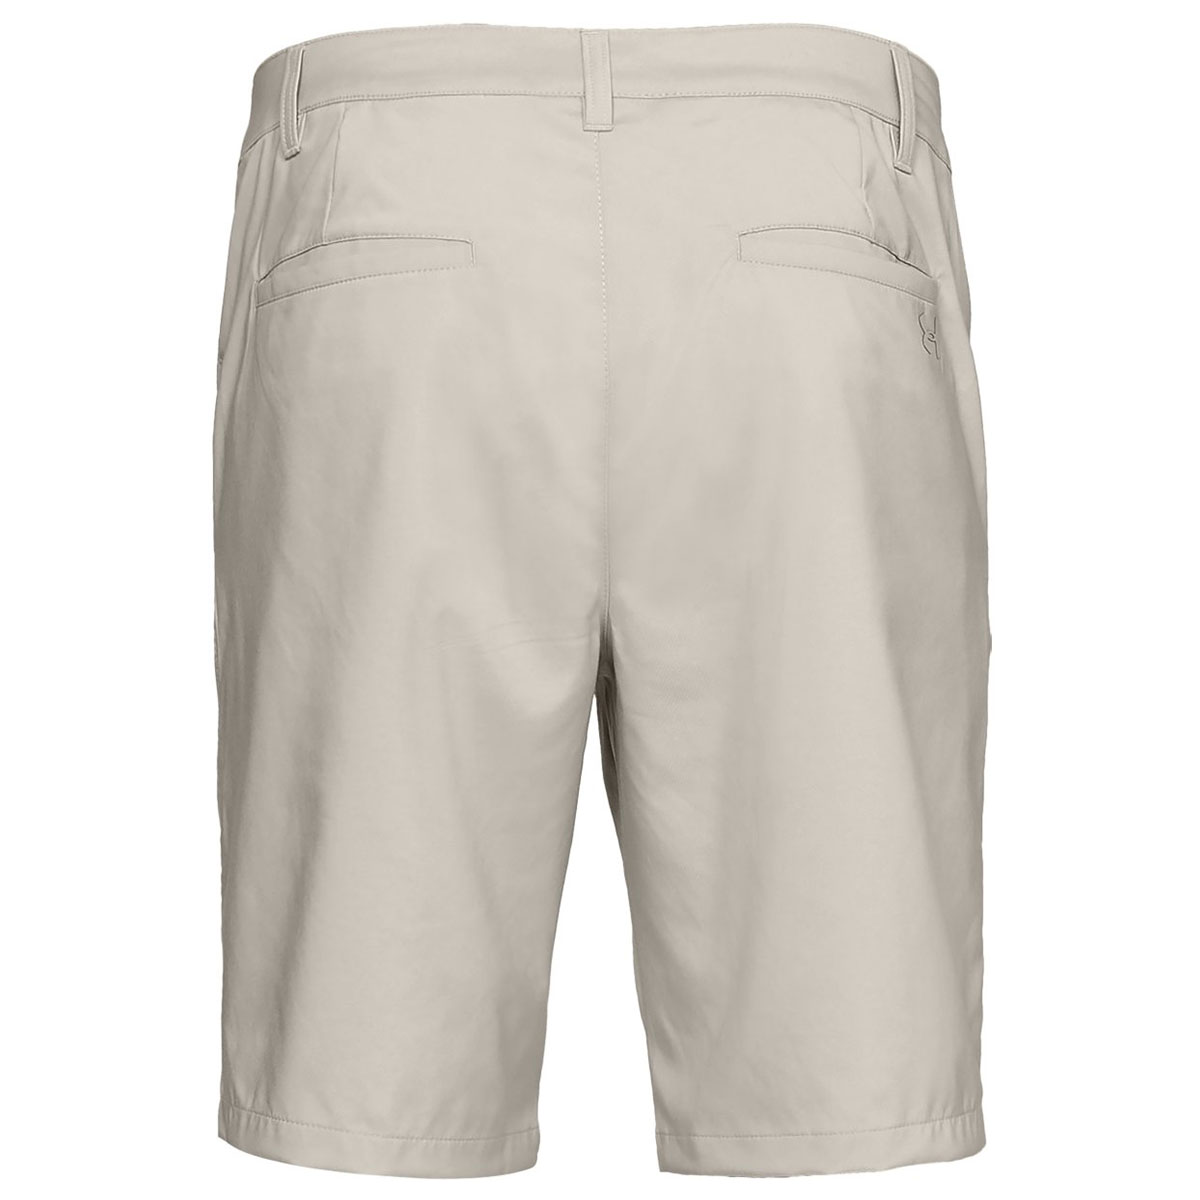 Under-Armour-Mens-EU-Tech-Stretch-Soft-Fitted-Golf-Shorts Indexbild 9